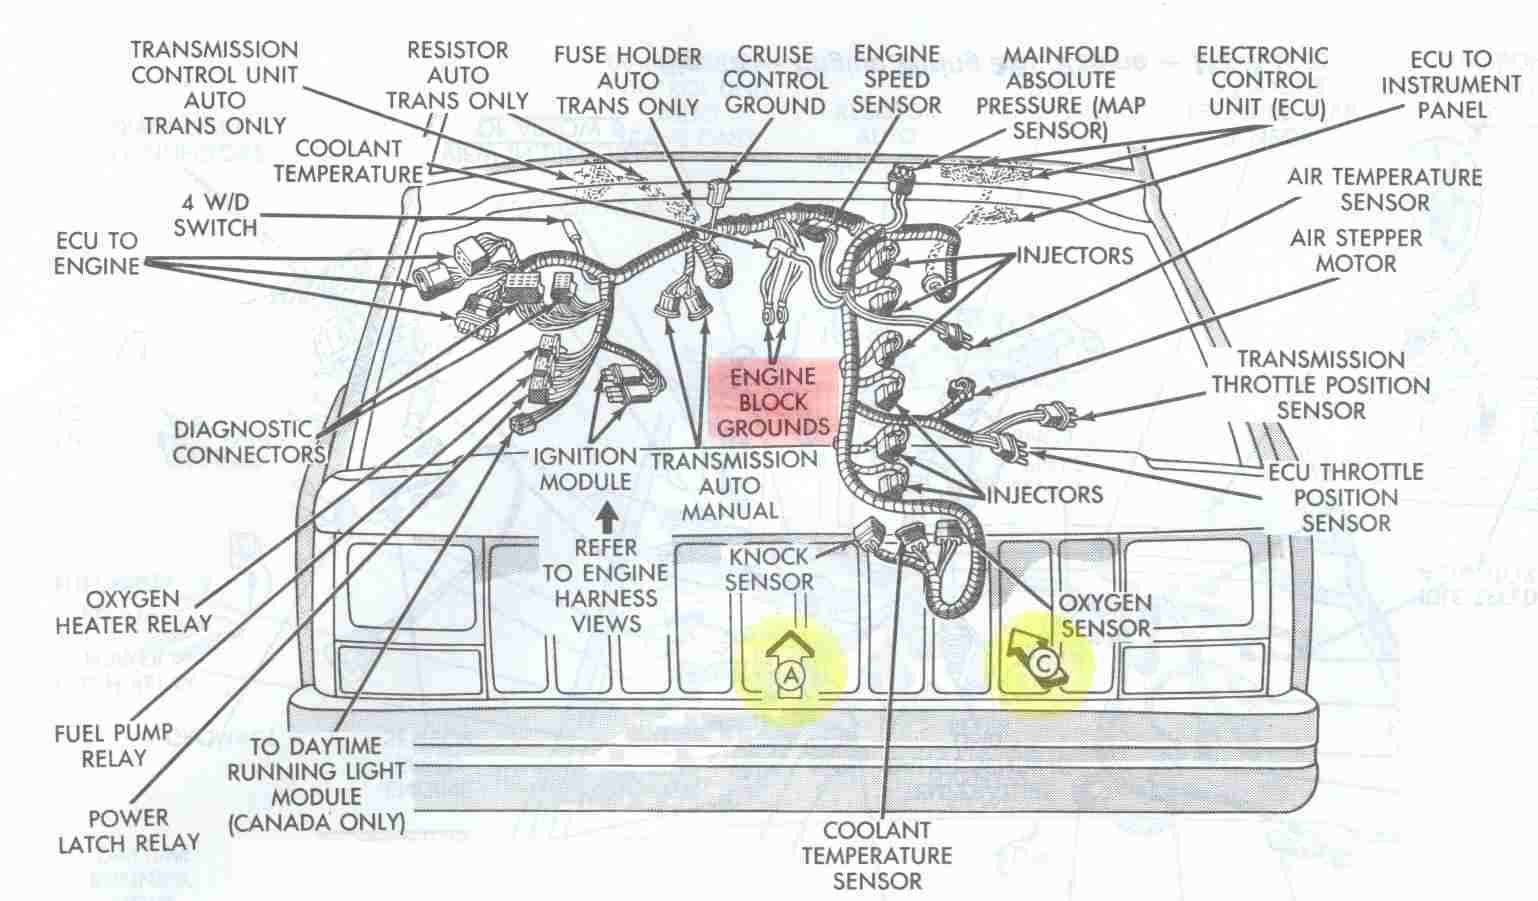 ab0134a7d9e021431187af597eb4aeca engine bay schematic showing major electrical ground points for 1990 jeep cherokee wiring diagram at reclaimingppi.co